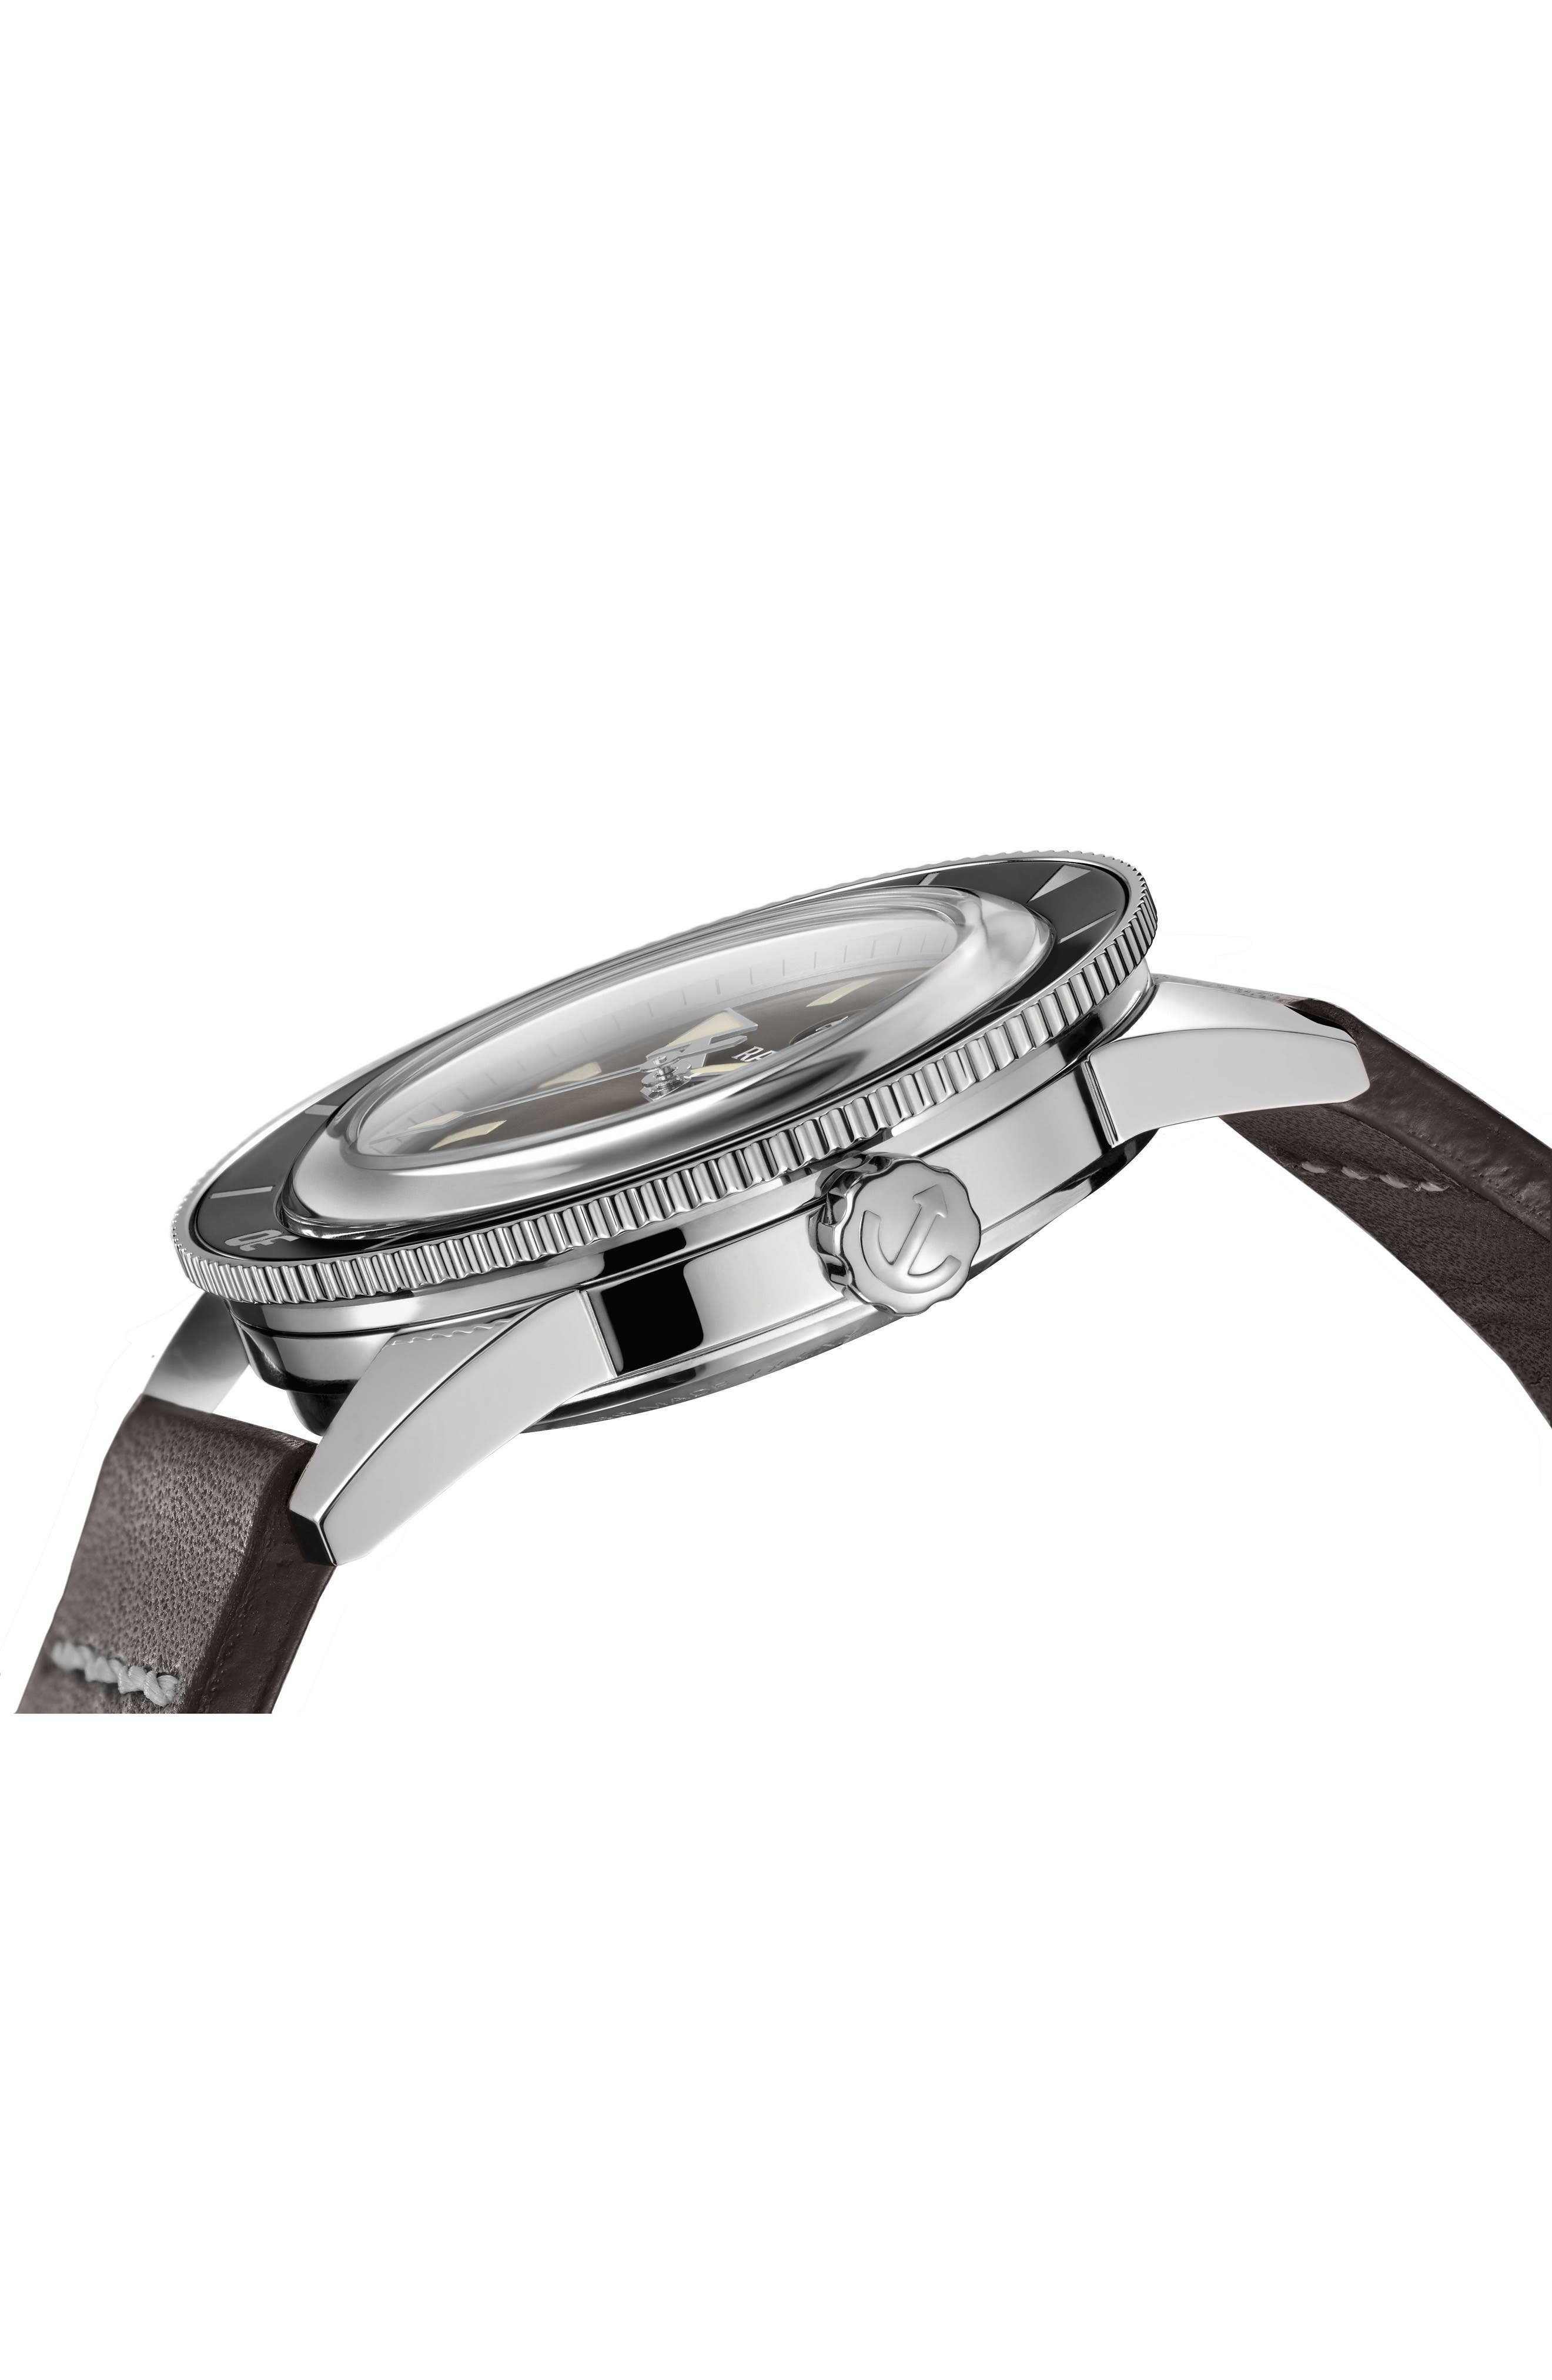 RADO, HyperChrome Captain Cook Automatic Leather Strap Watch, 37.3mm, Alternate thumbnail 3, color, BROWN/ SILVER